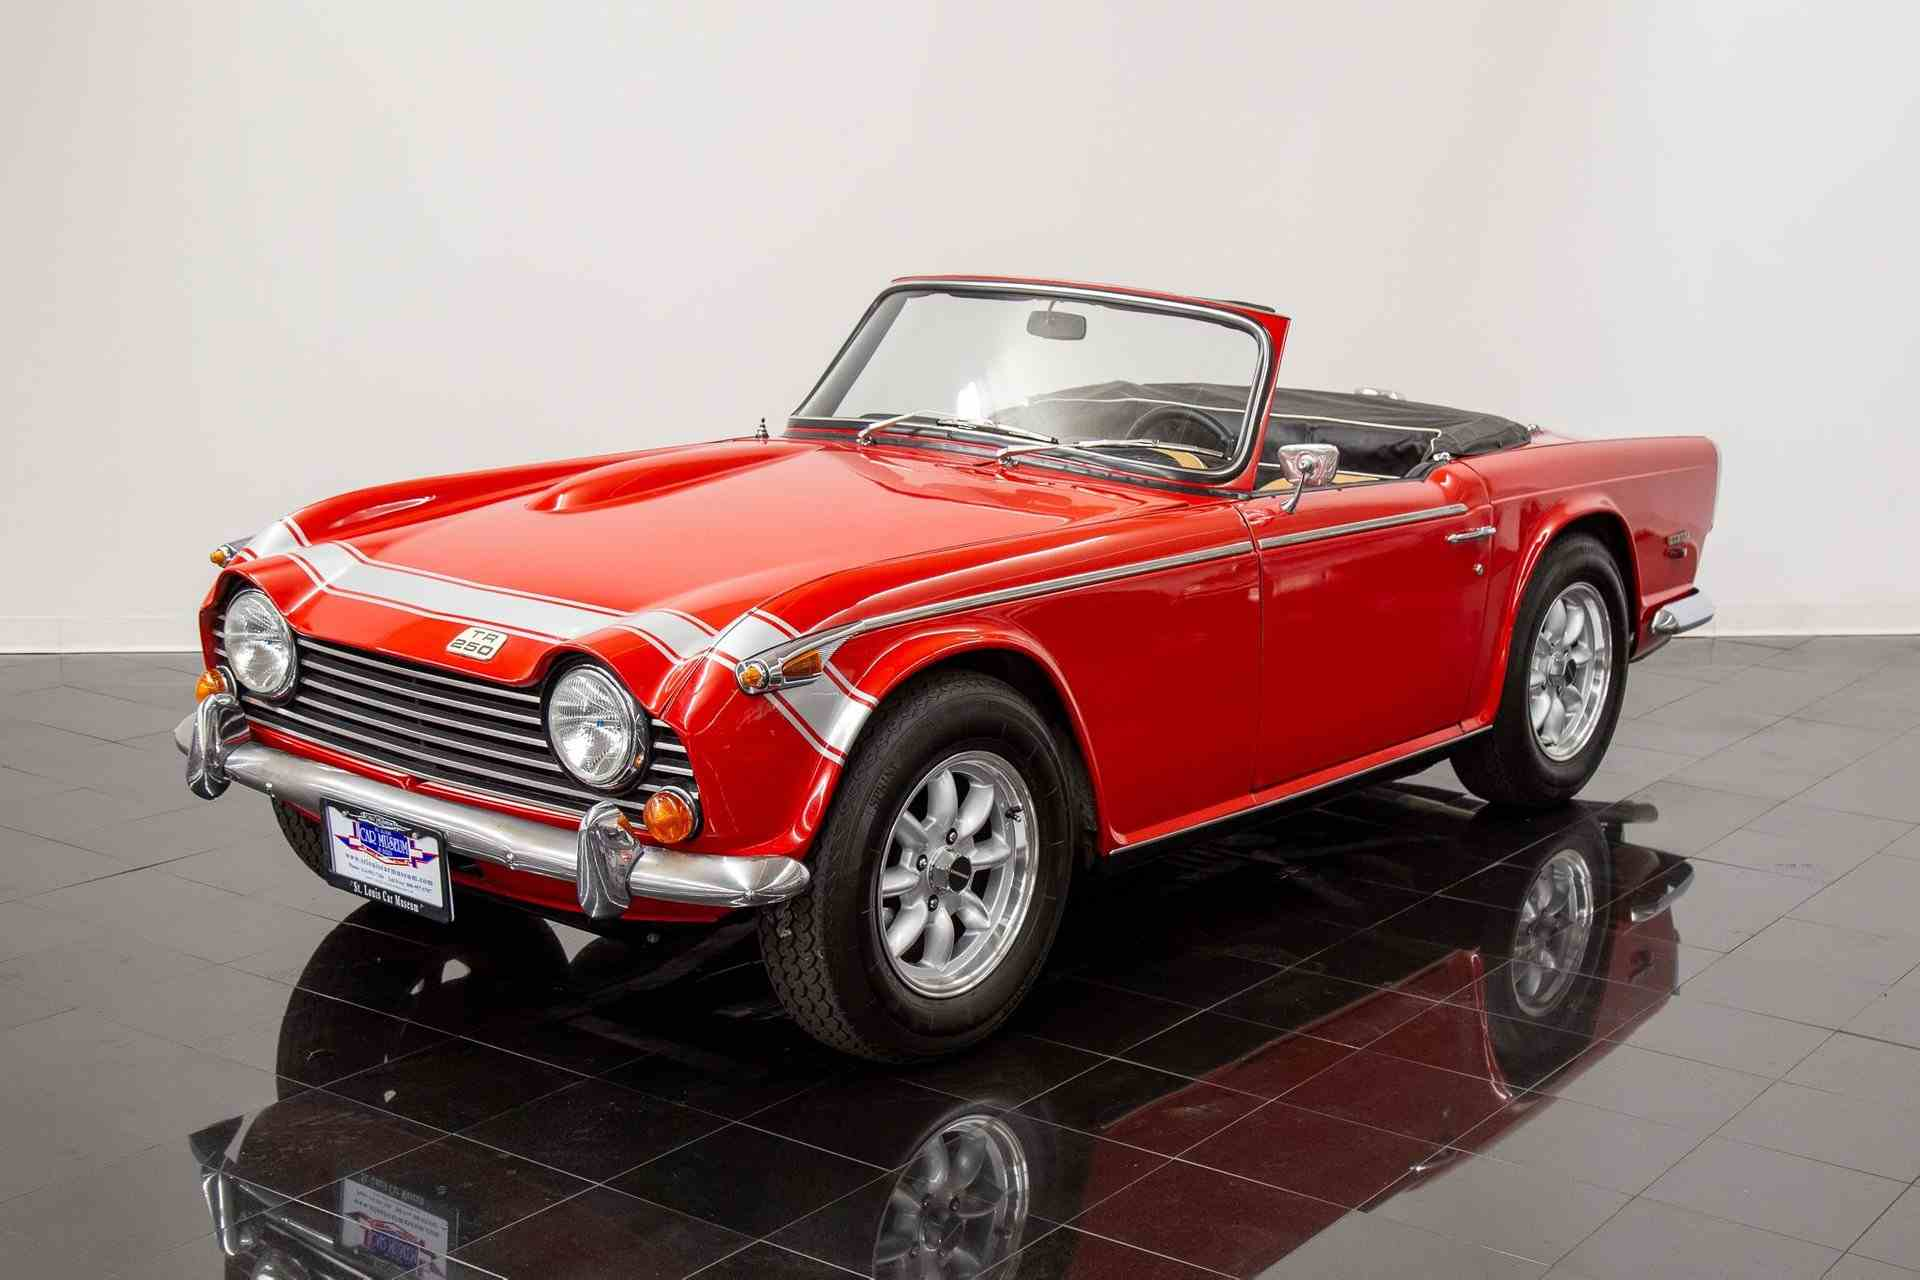 1968 Triumph TR250 for sale